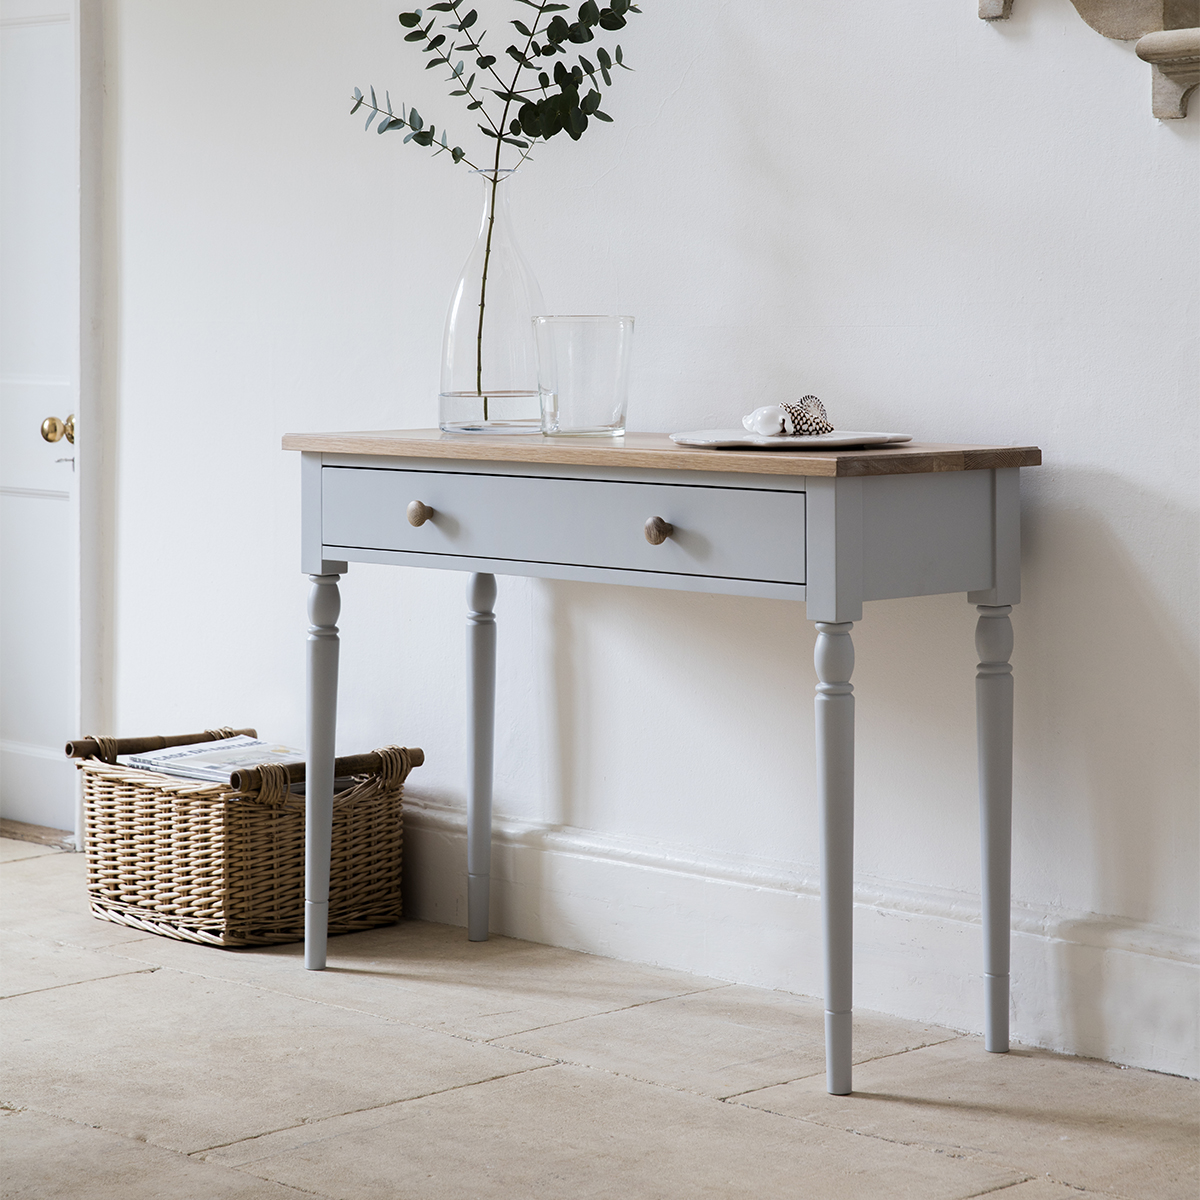 Marlow Console table  - £377